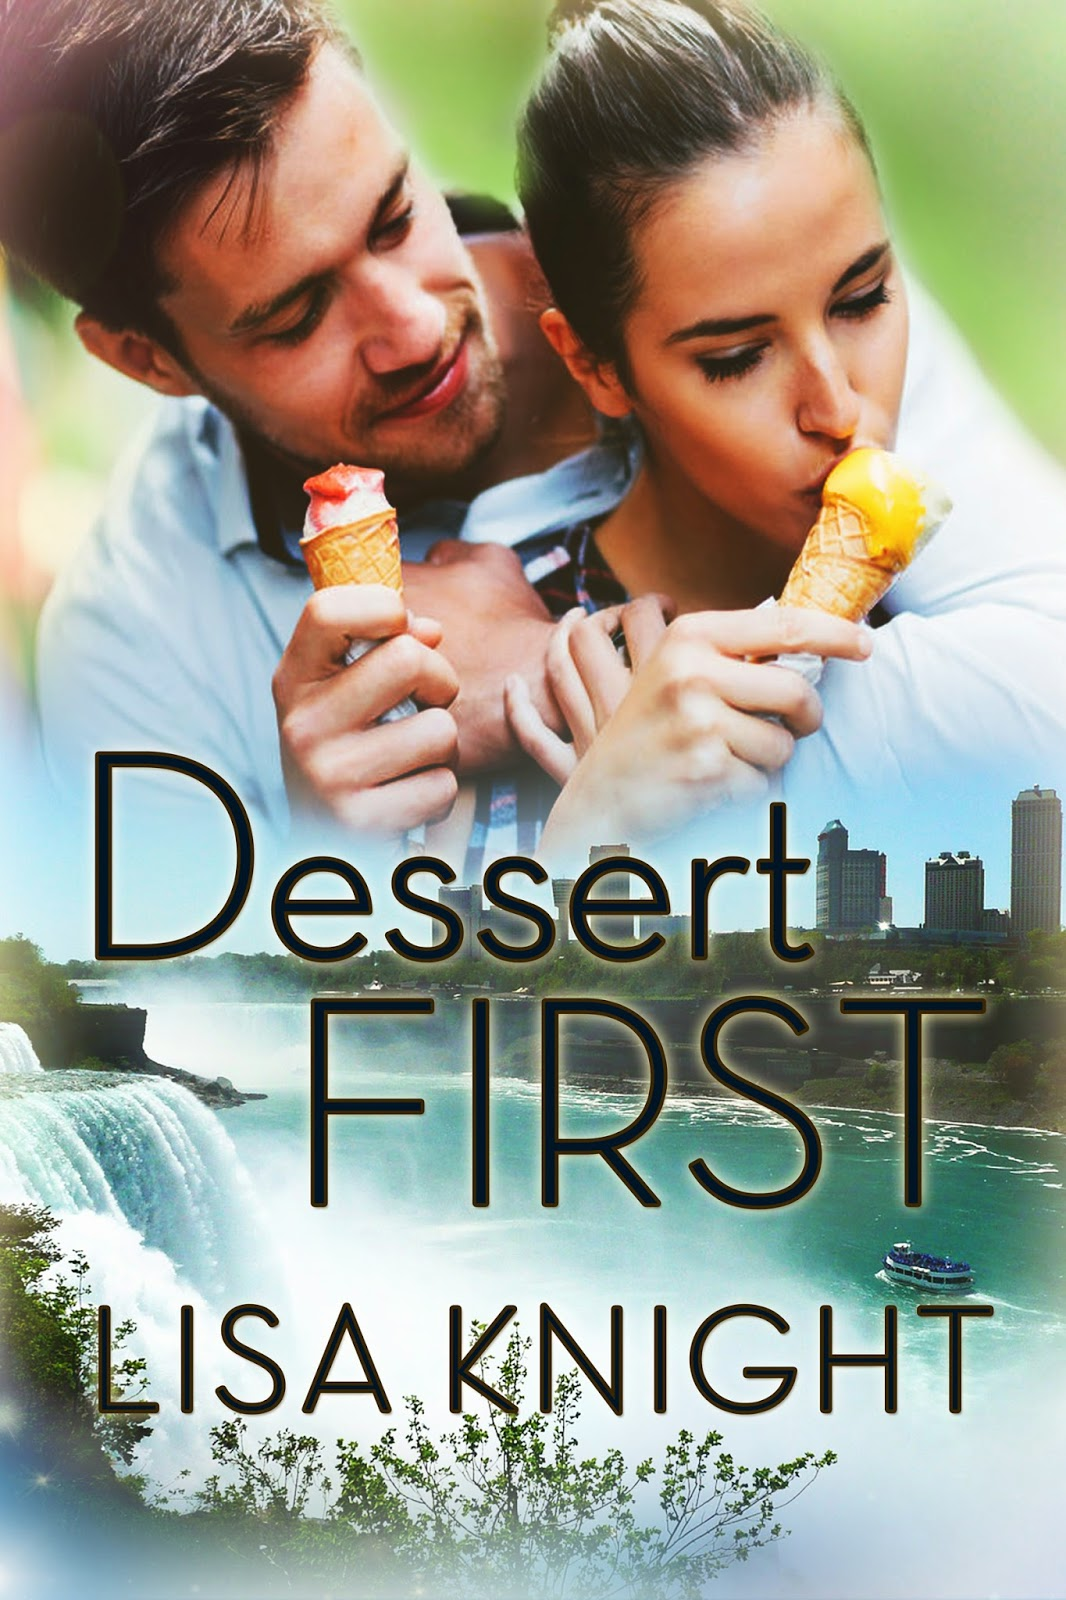 http://www.amazon.com.au/Dessert-First-Lisa-Knight-ebook/dp/B00PM6590I/ref=sr_1_1?s=digital-text&ie=UTF8&qid=1416019030&sr=1-1&keywords=lisa+knight+dessert+first